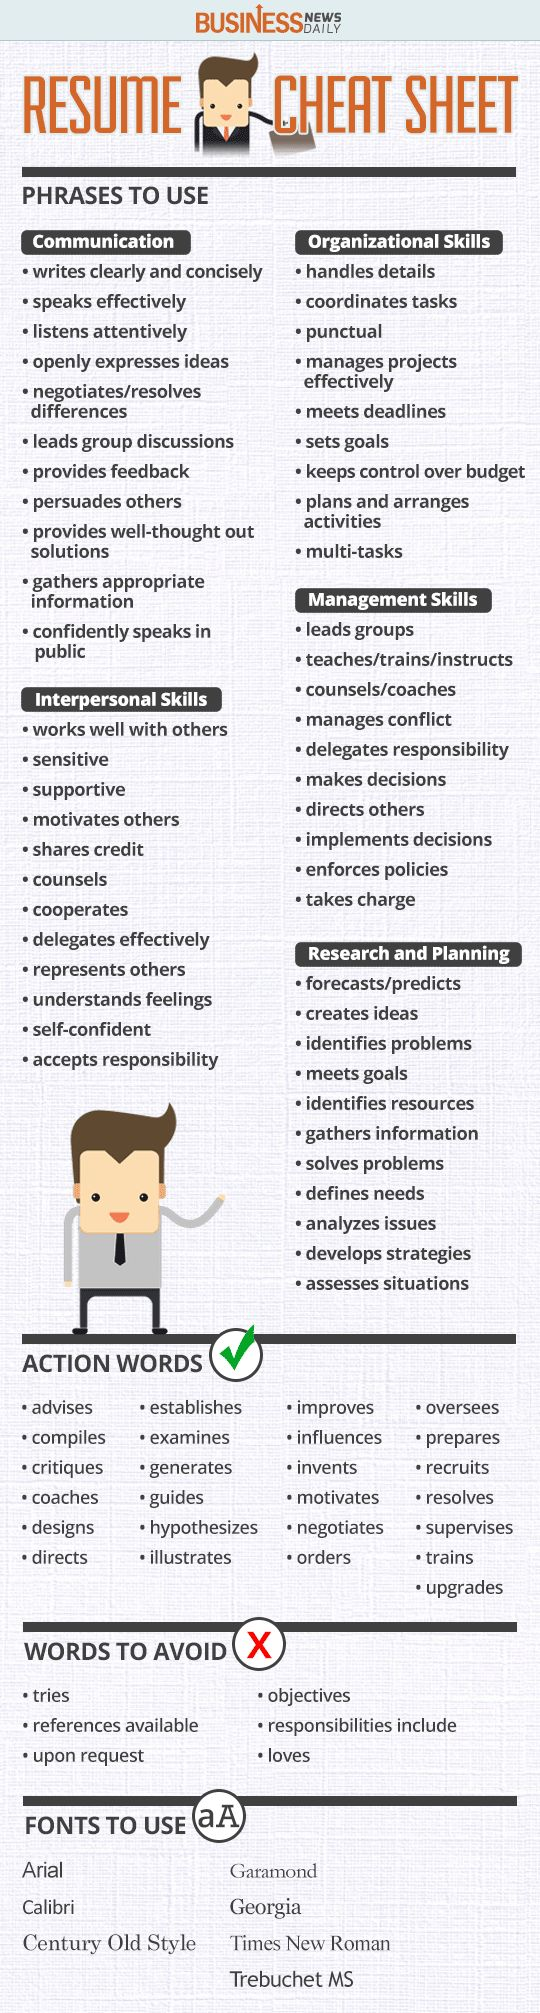 Picnictoimpeachus  Outstanding  Ideas About Resume On Pinterest  Cv Format Resume Cv And  With Handsome Resume Cheat Sheet Infographic Andrews Almost Done With A Complete Unit On Employment Which With Amusing Preparing A Resume Also Microsoft Office Resume Templates  In Addition Sample Business Resume And Sending Resume Email As Well As Entry Level Administrative Assistant Resume Additionally Skills On Resume Example From Pinterestcom With Picnictoimpeachus  Handsome  Ideas About Resume On Pinterest  Cv Format Resume Cv And  With Amusing Resume Cheat Sheet Infographic Andrews Almost Done With A Complete Unit On Employment Which And Outstanding Preparing A Resume Also Microsoft Office Resume Templates  In Addition Sample Business Resume From Pinterestcom